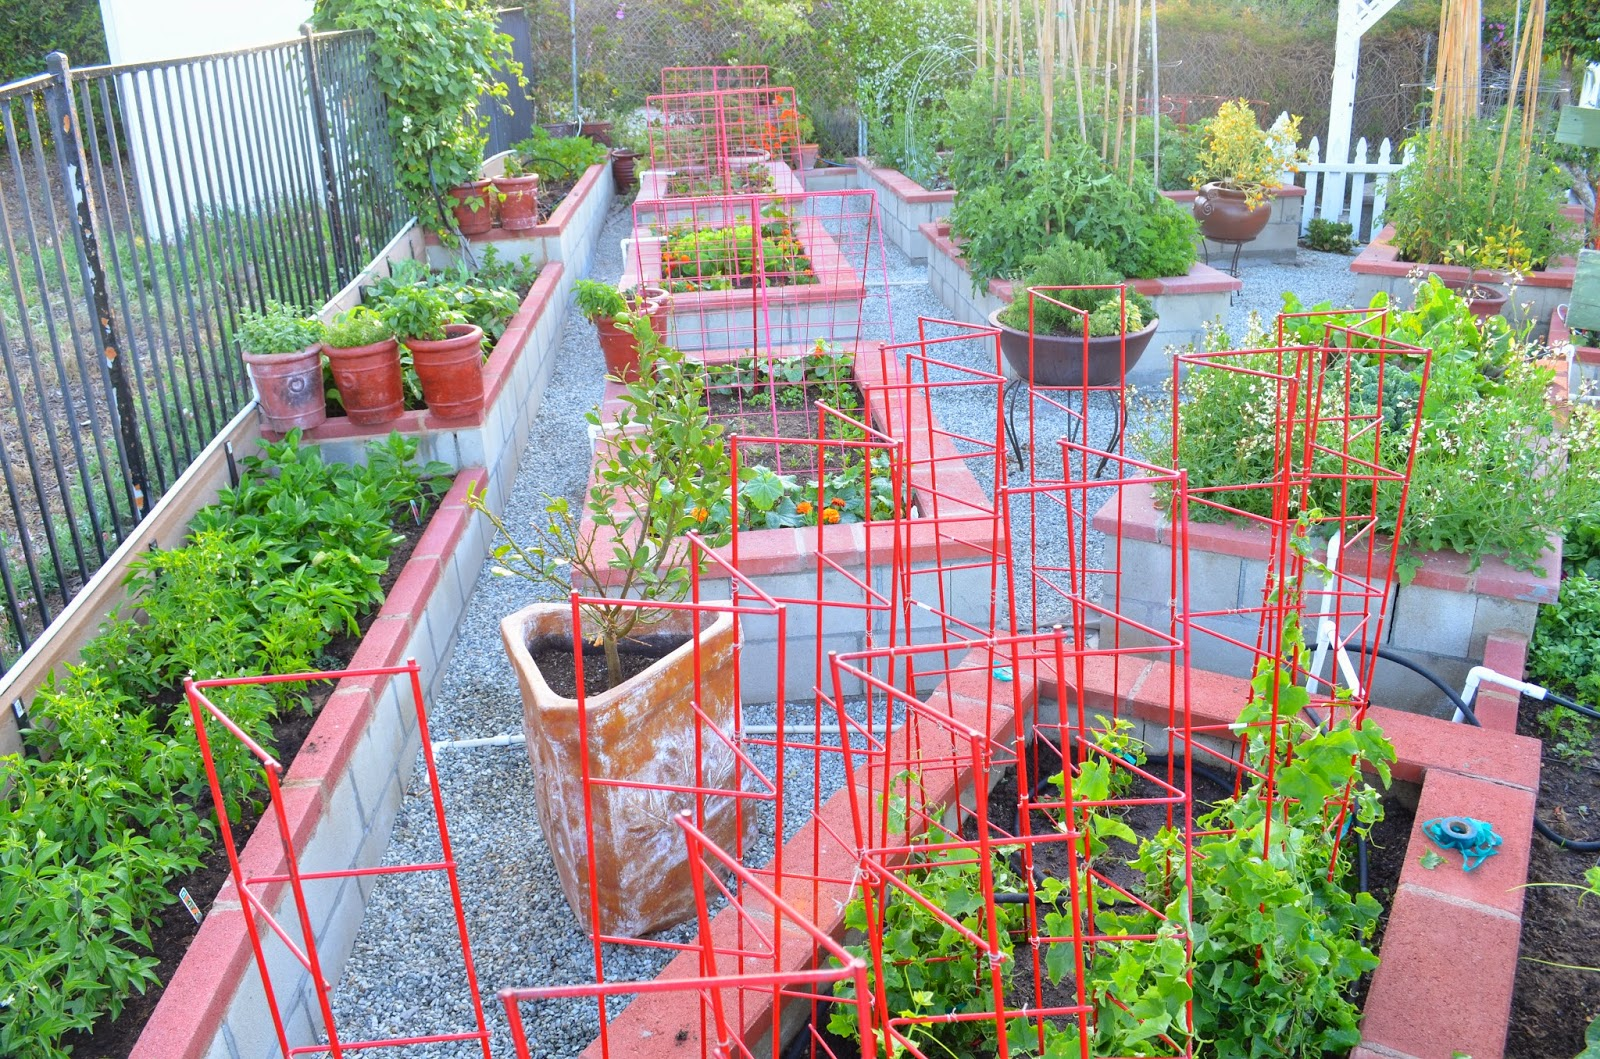 Plants For Kitchen Garden Entertaining From An Ethnic Indian Kitchen Garden Tour 2 The